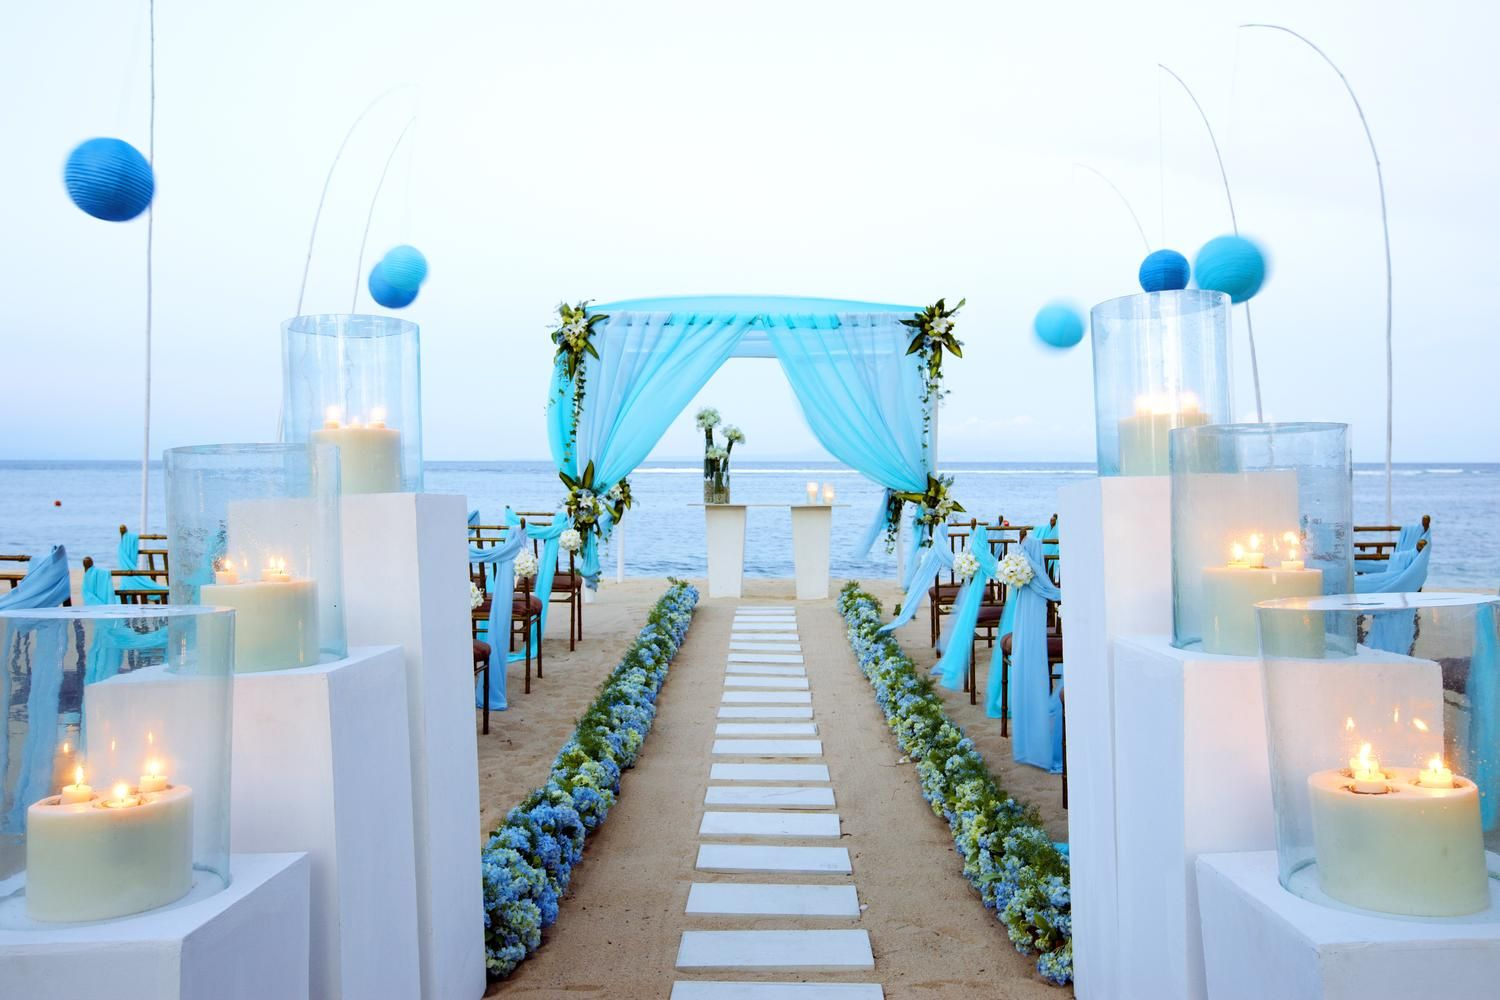 Luxury Wedding And Event Planning Luxurious Wedding Organizer Planning Your Perfect Celebr Wedding Beach Ceremony Wedding Venues Beach Beach Wedding Turquoise